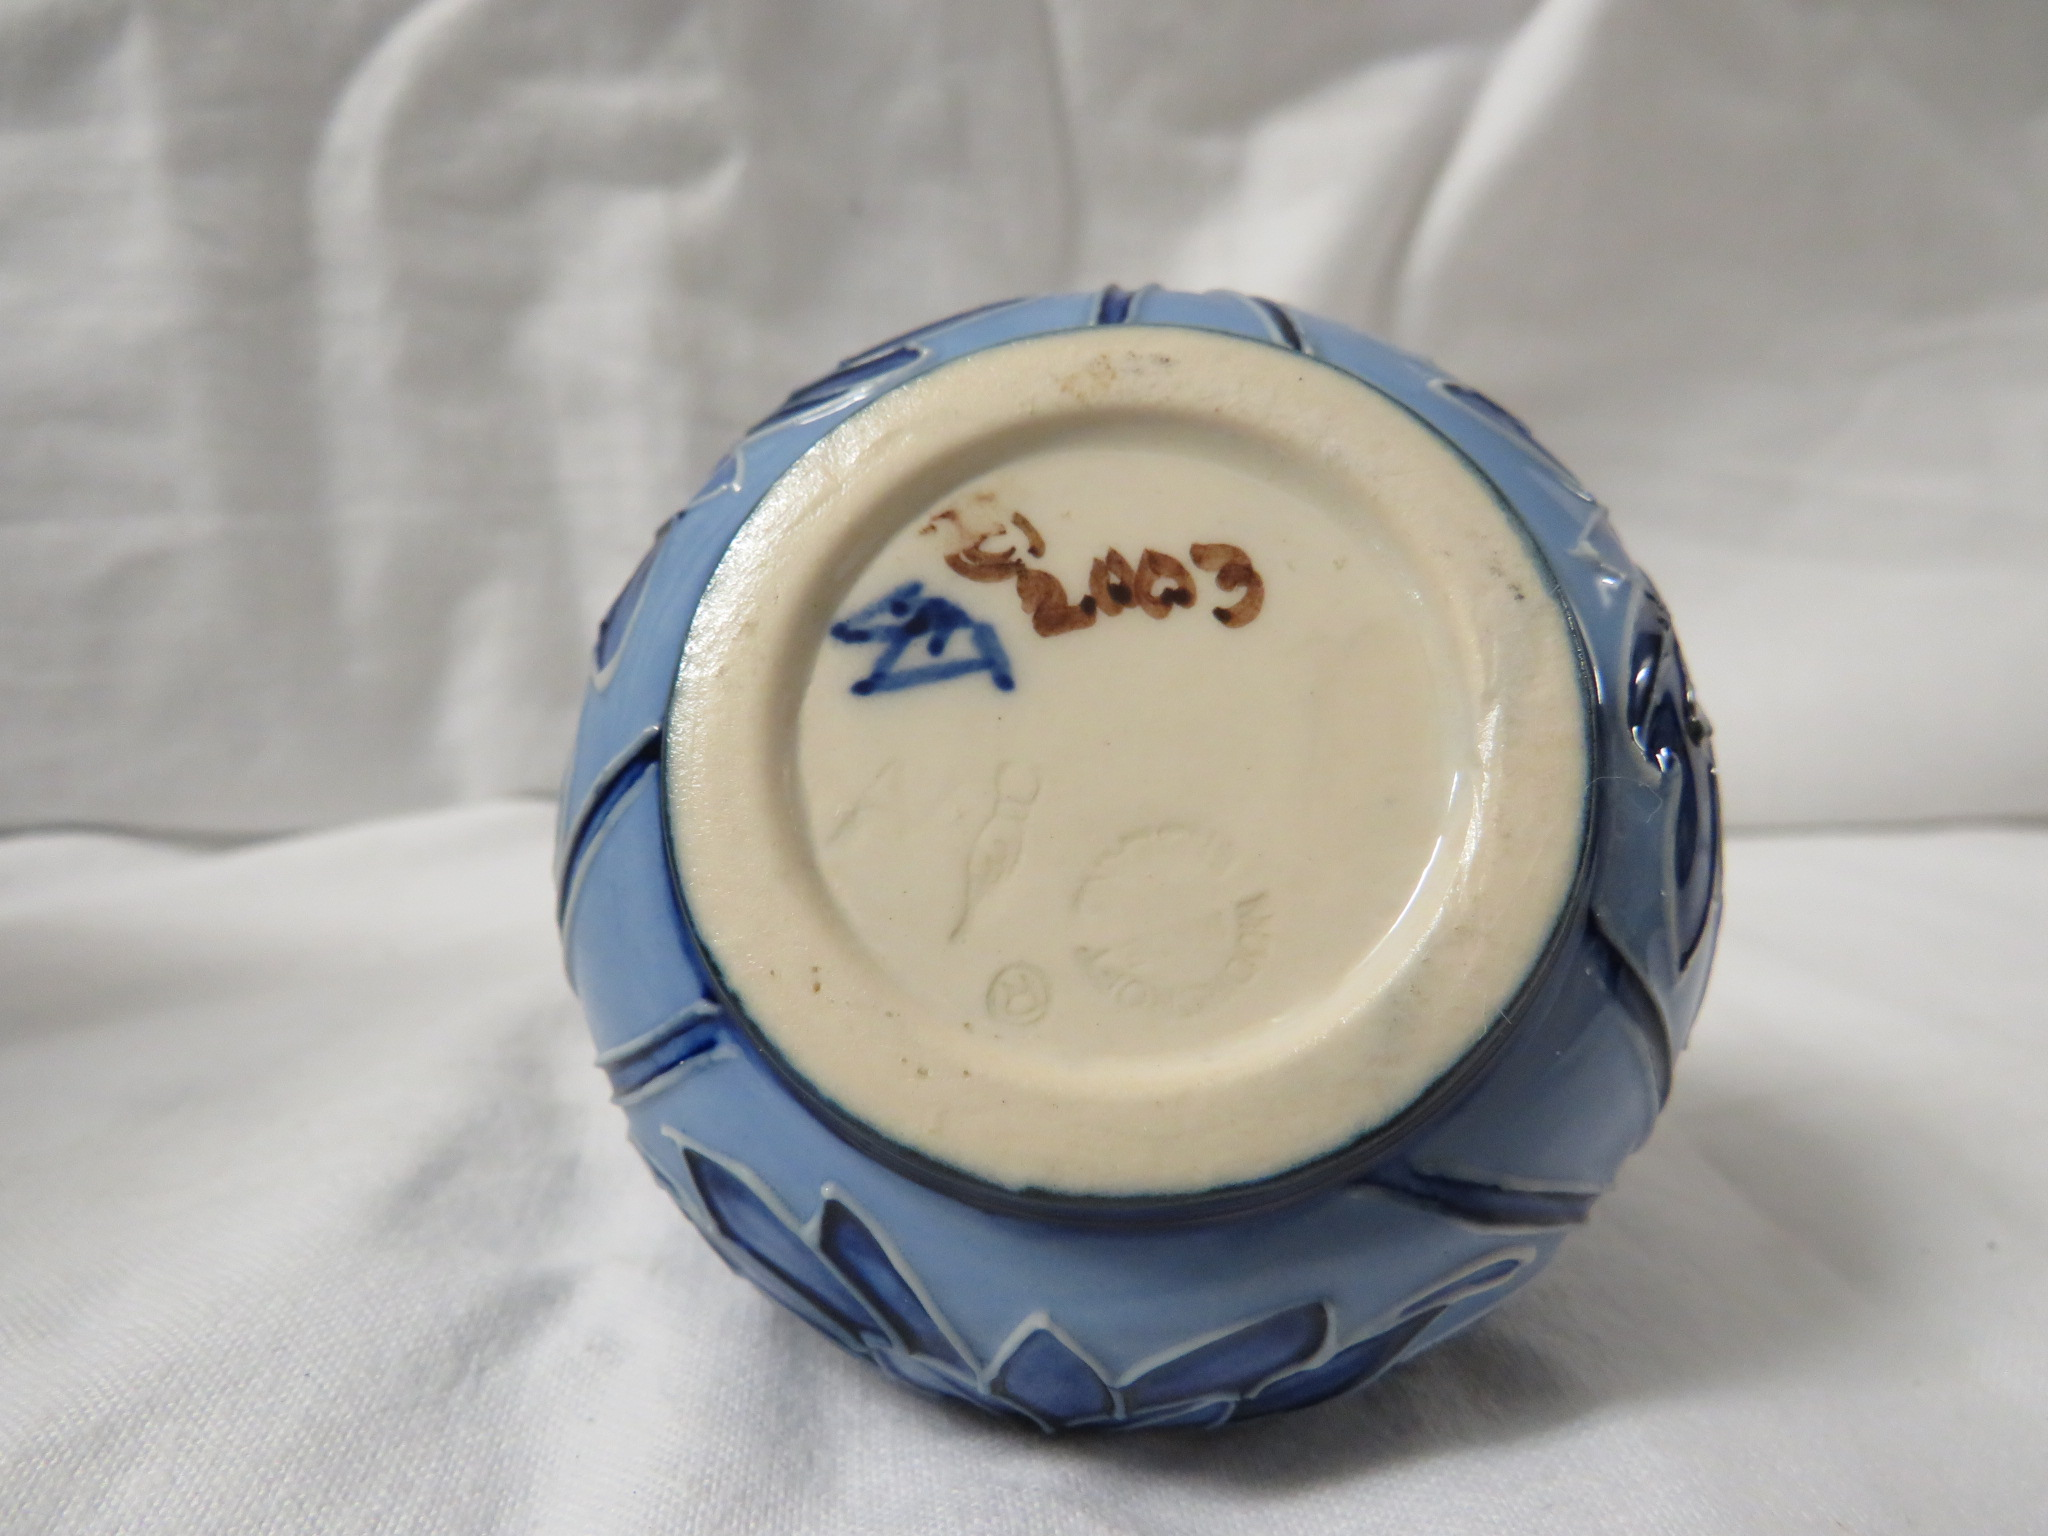 Lot 10 - Moorcroft pottery small squat vase in the style of Macintyre Florian ware, pale blue ground with